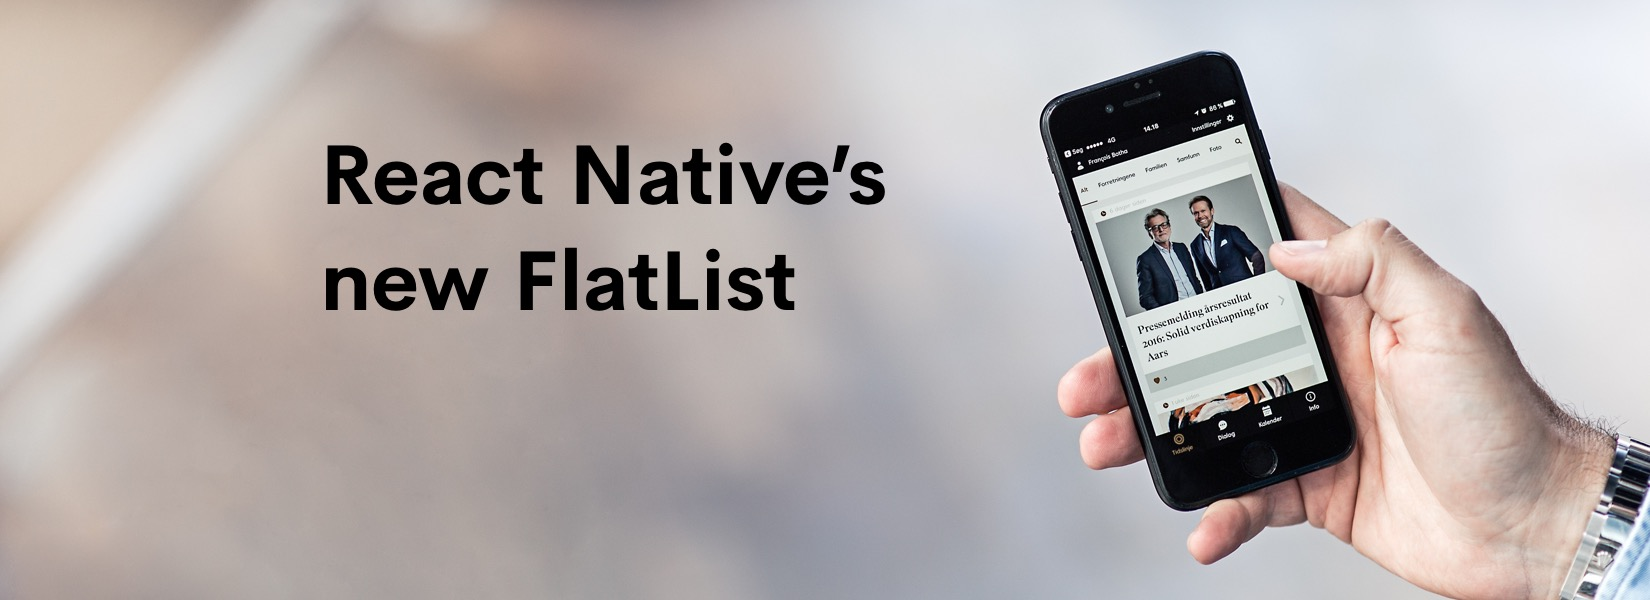 What's React Native's new FlatList?